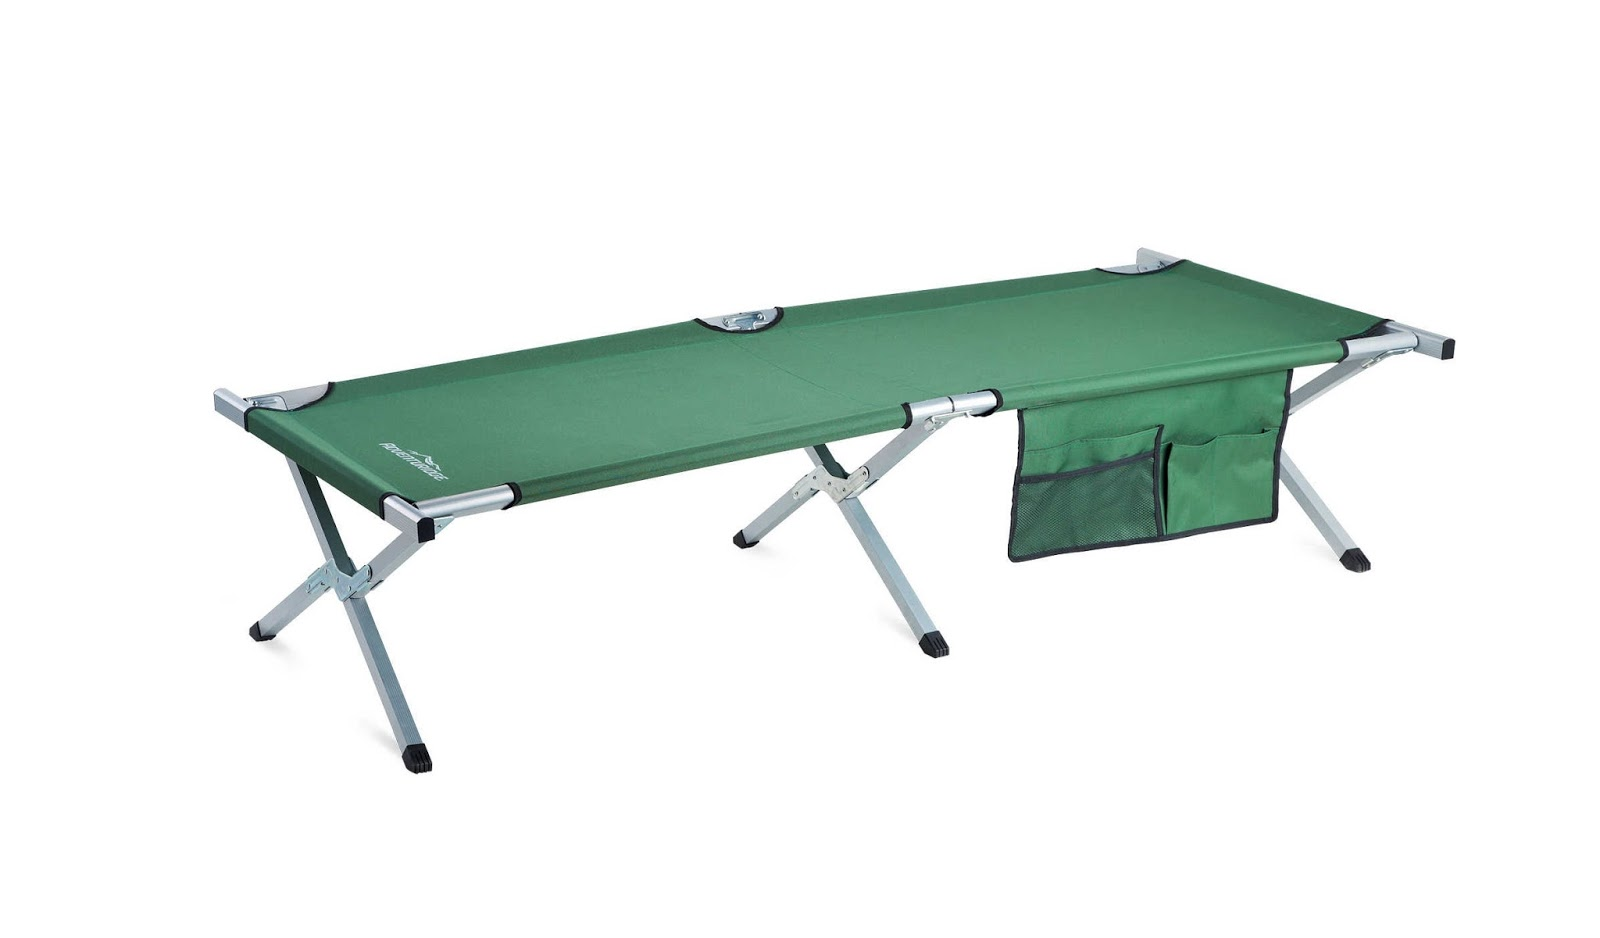 Folding Beds Aldi : Review aldi camping range the test pit